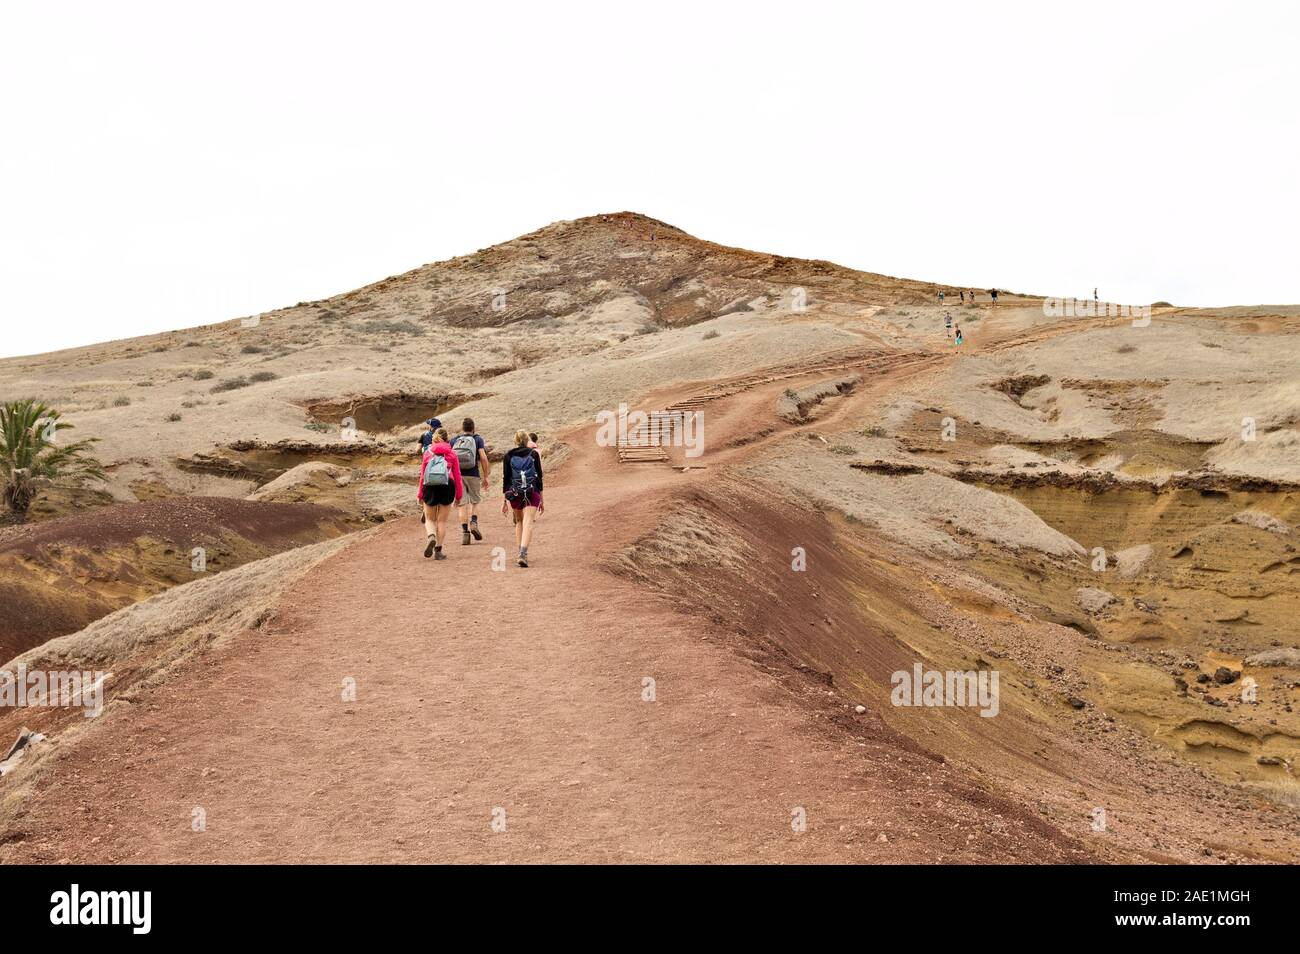 A group of hikers walking along a desert pathway with volcanic rocks and sand dunes in Madeira Island (Ponta de Sao Lourenco, Portugal, Europe) Stock Photo